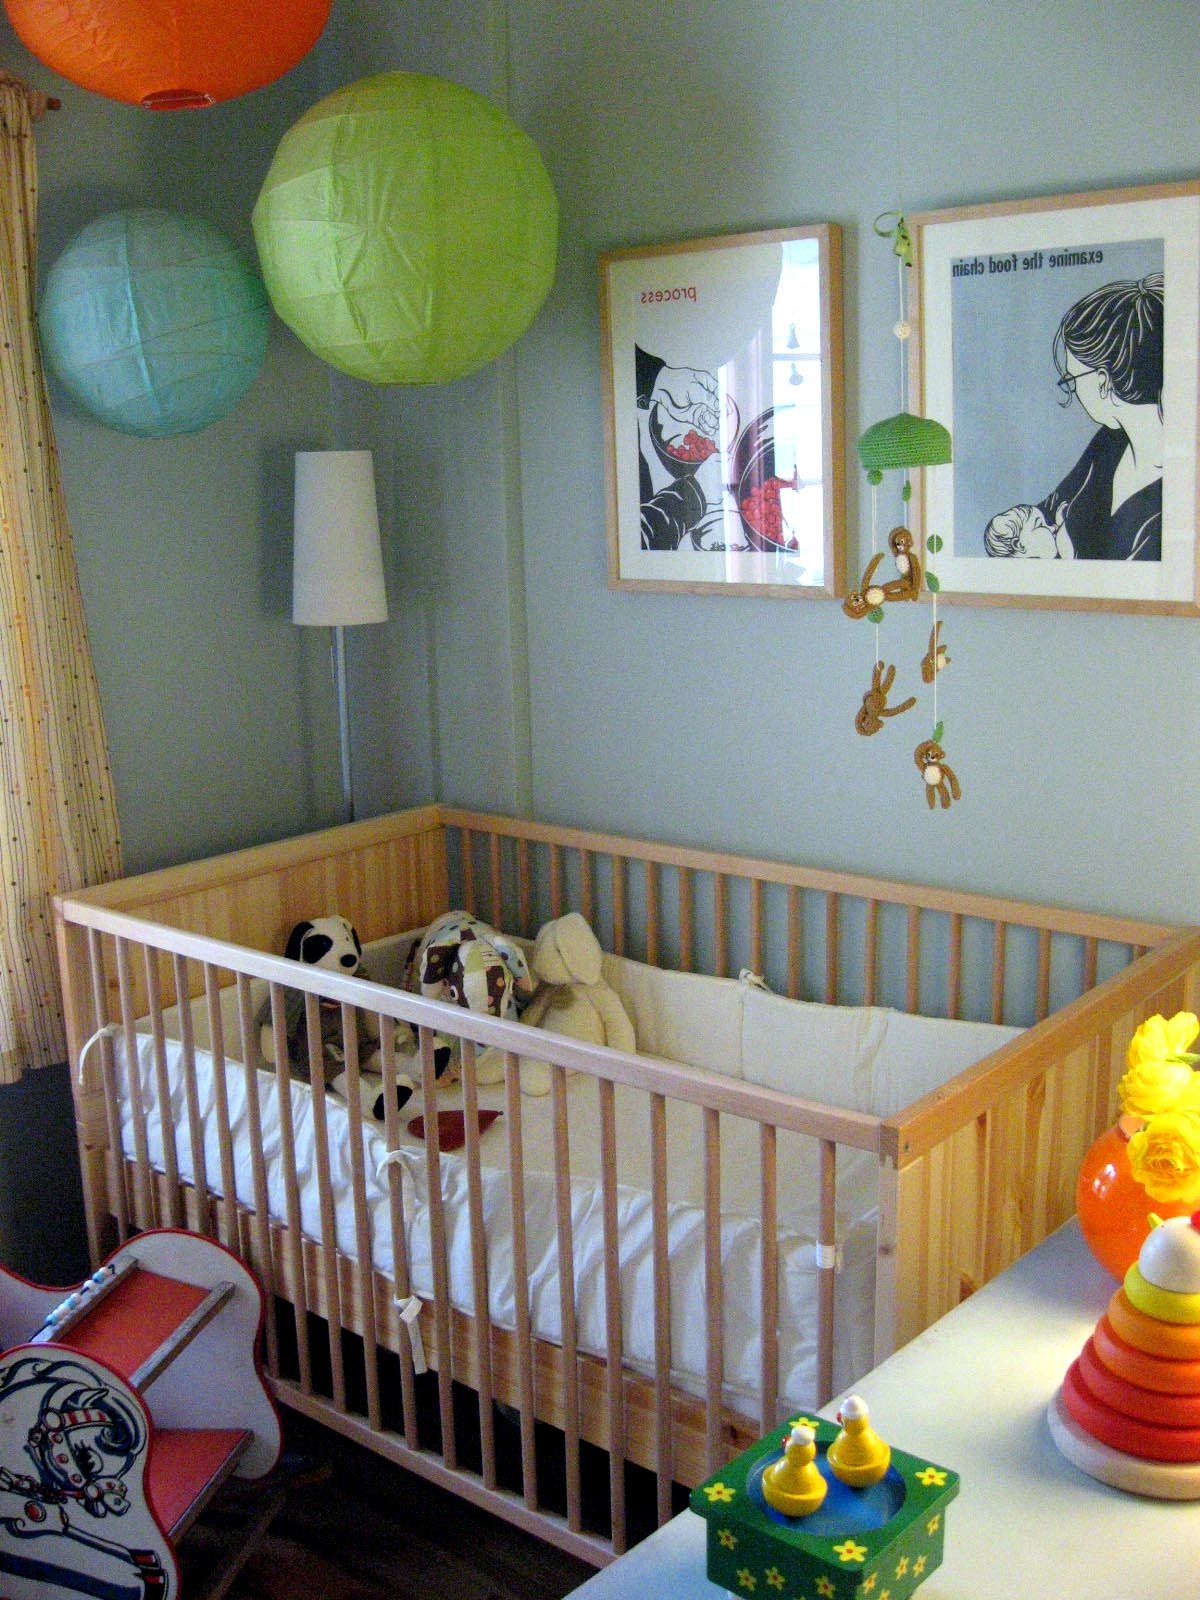 Baby Room Decorating Ideas with Paper Lanterns | Interior ...